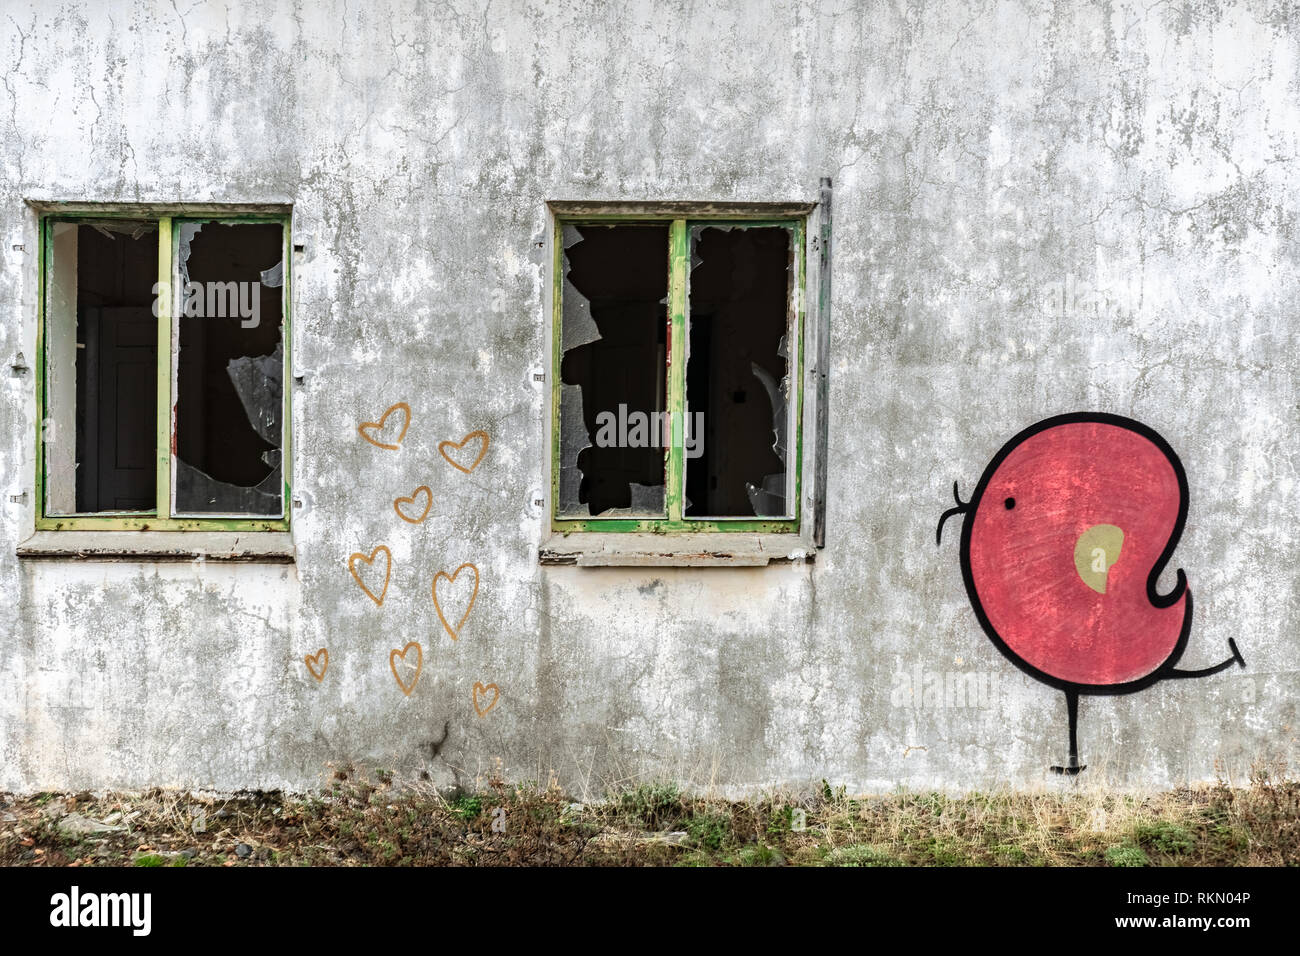 Amiantos, Cyprus - October 2019: Graffiti on the wall of Amiantos abandoned hospital on Cyprus. Abandoned spaces - Stock Image